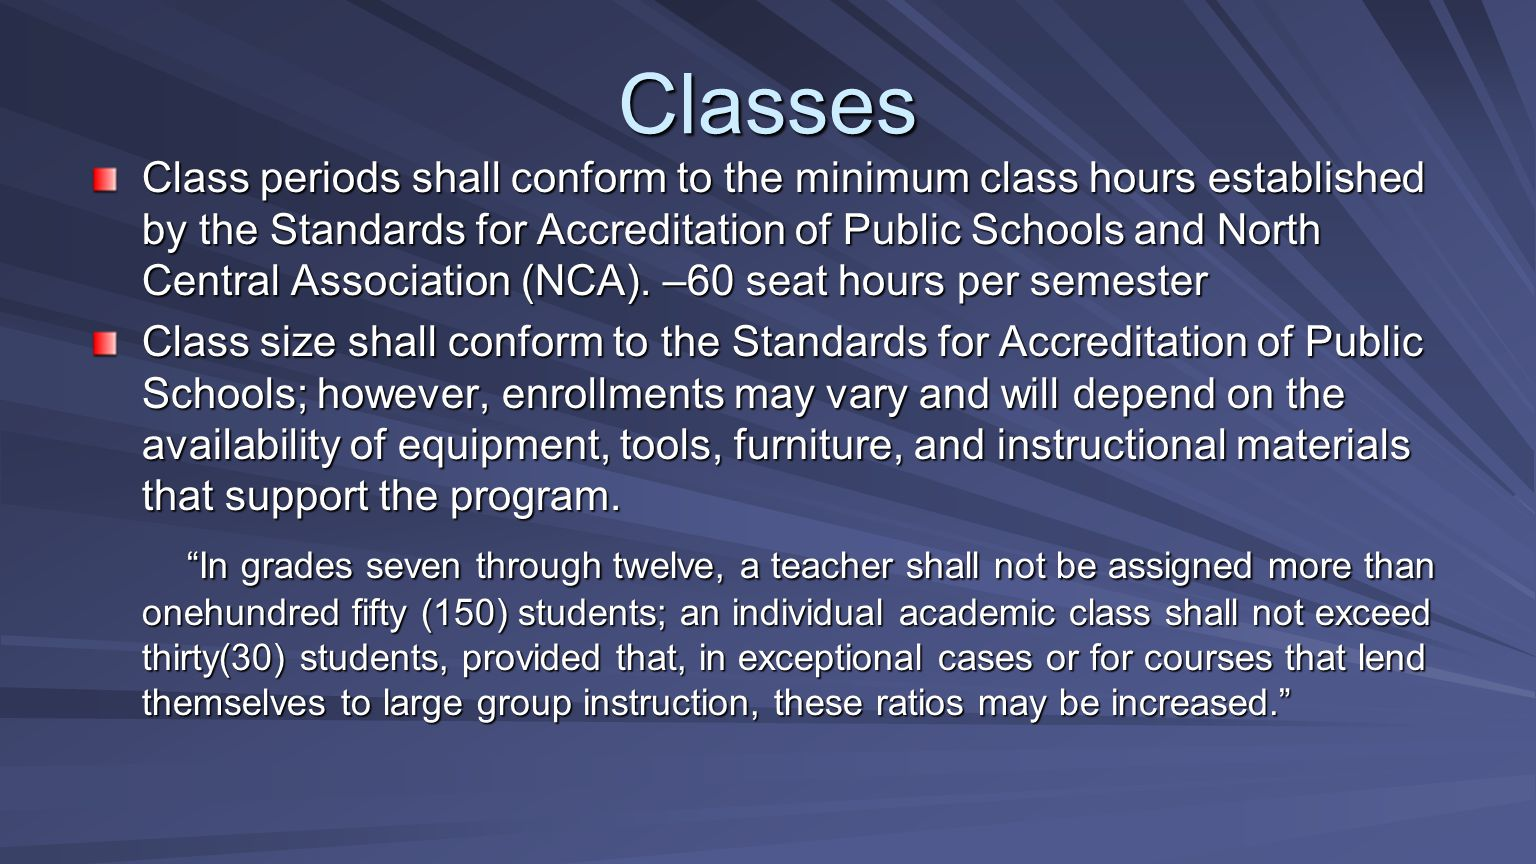 Classes Class periods shall conform to the minimum class hours established by the Standards for Accreditation of Public Schools and North Central Asso